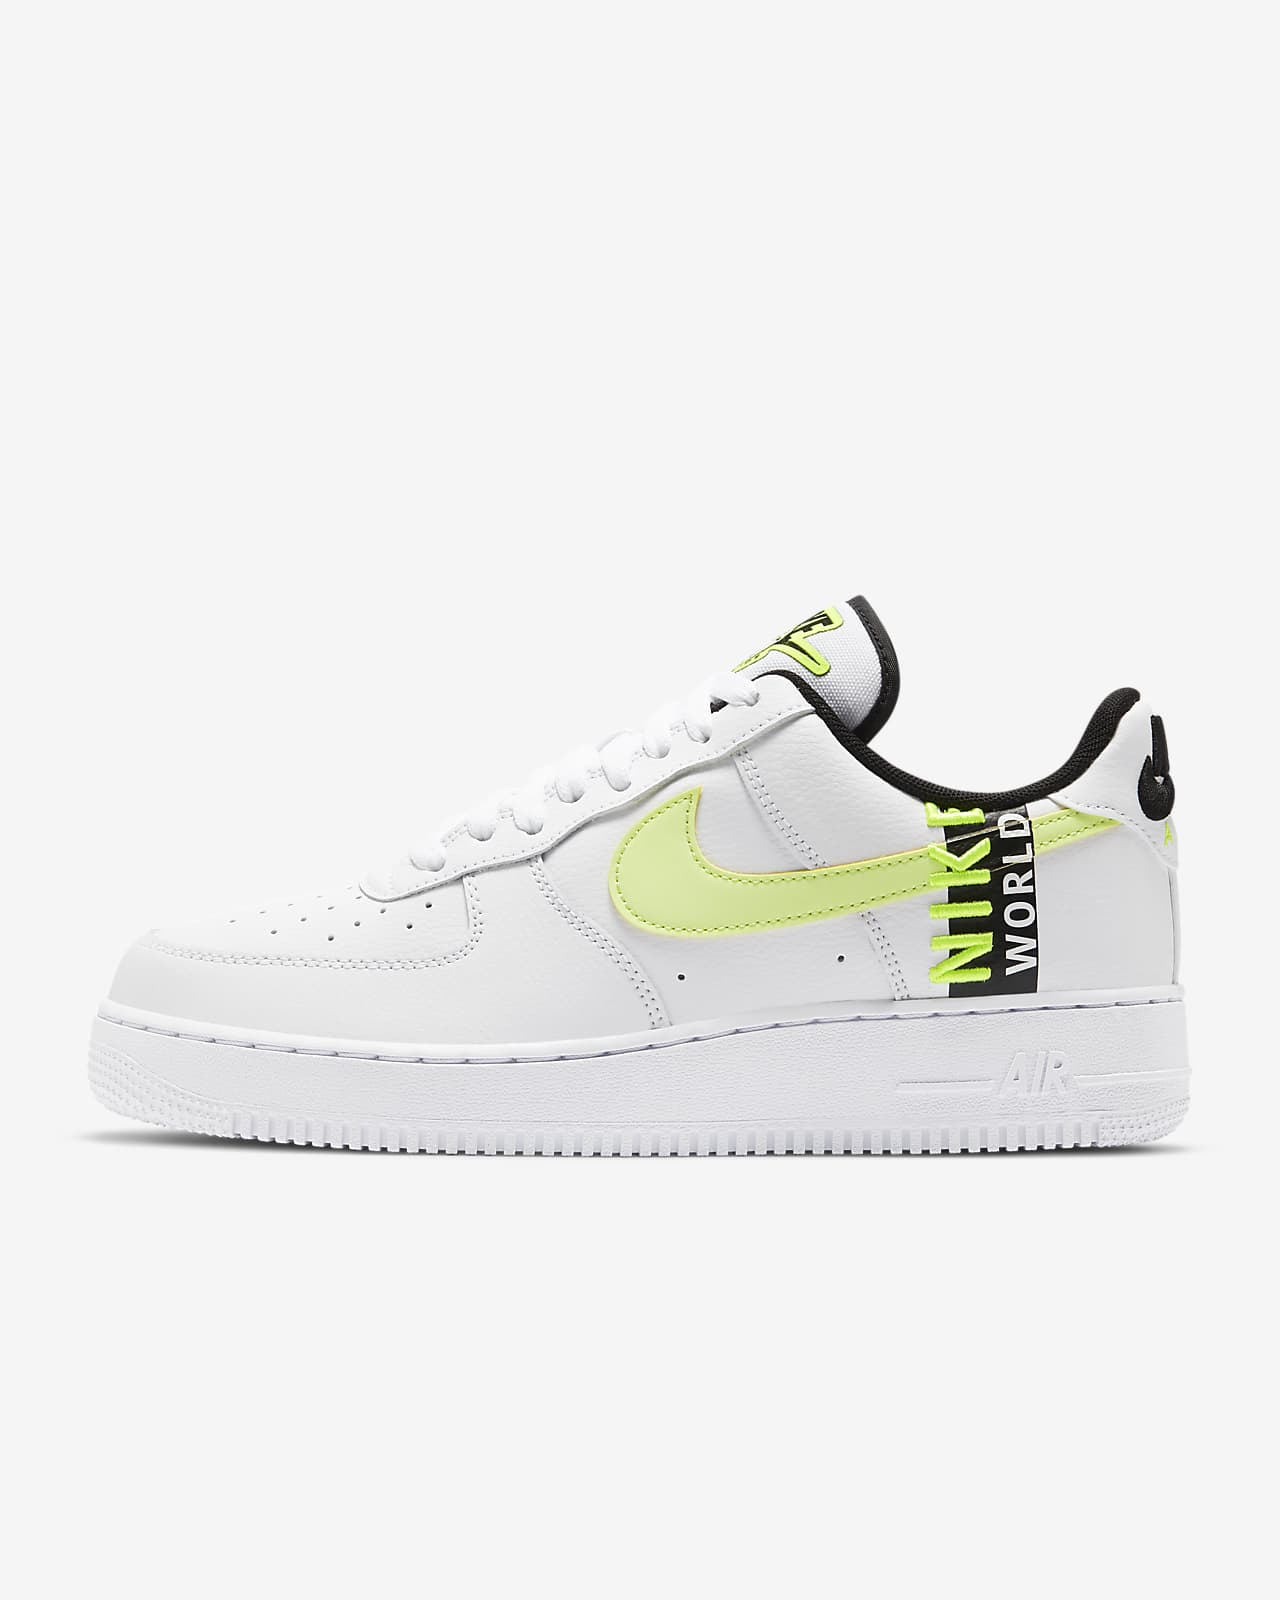 taller Encogimiento trabajo duro  Nike Air Force 1 '07 LV8 WW Men's Shoe. Nike.com